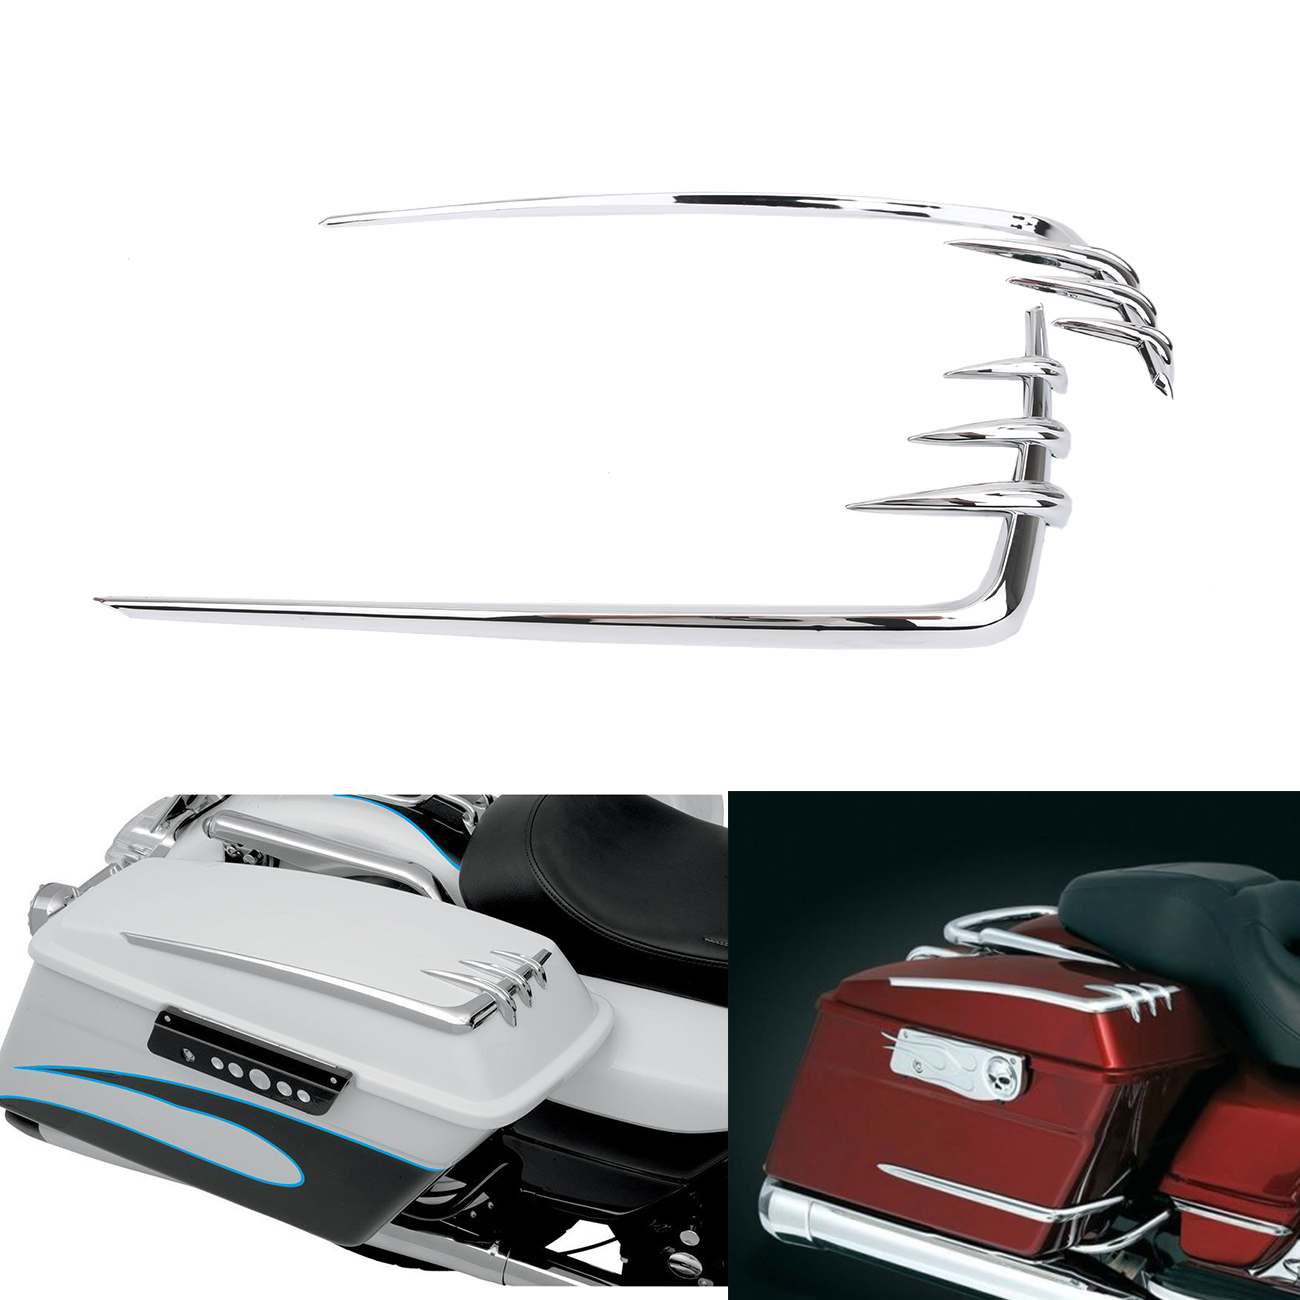 1Pair Chrome Saddle Box Saddlebag Lid Accents Cover For Harley Road King Electra Tri Glide Motorcycle